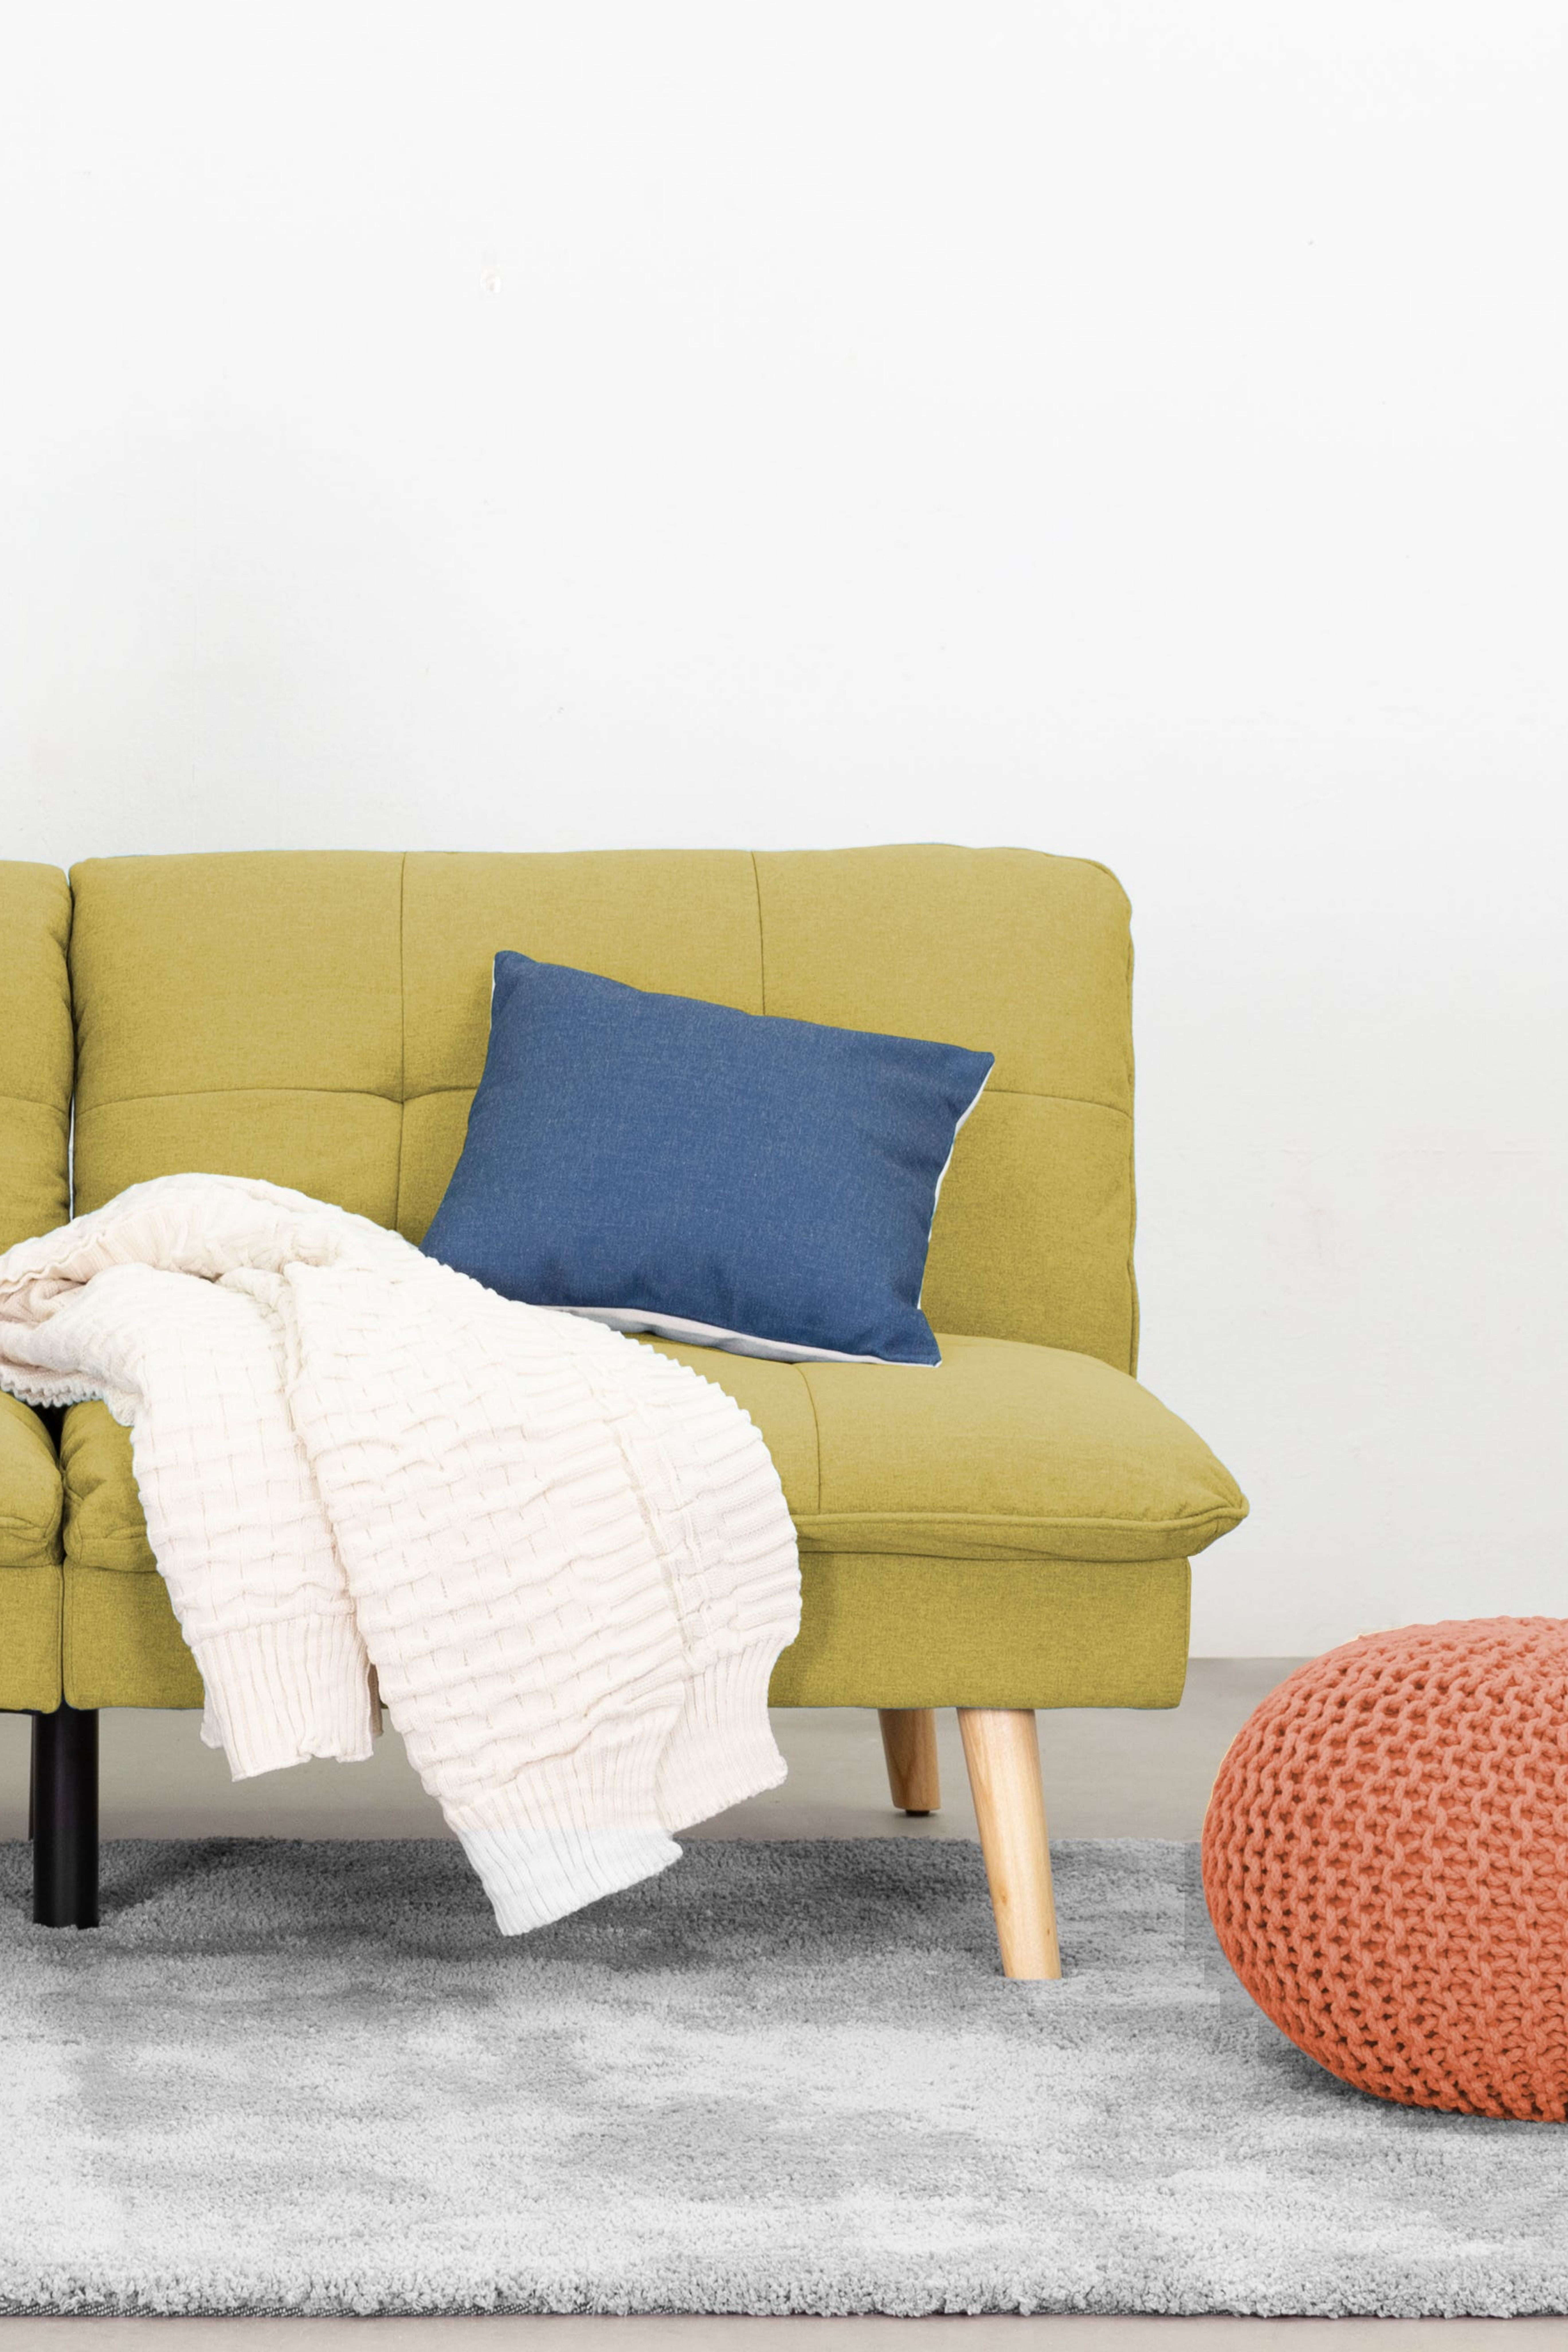 The Jen Sofa Bed Is A Fun Trendy Piece To Add Some Colour Into